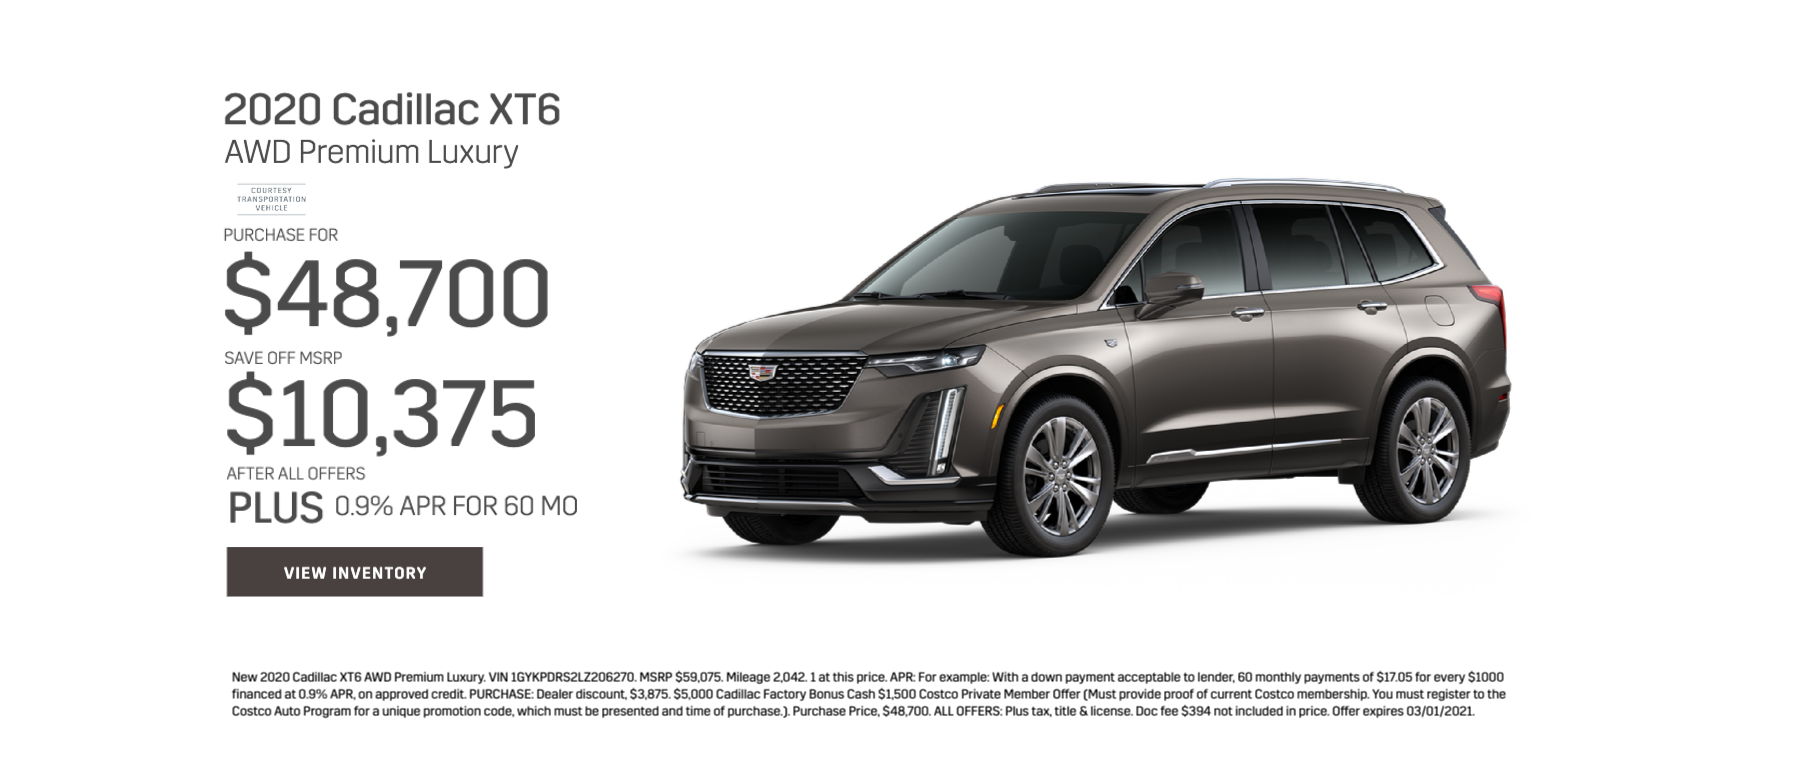 2020 Cadillac XT6 AWD Premium Luxury Purchase for $48,700